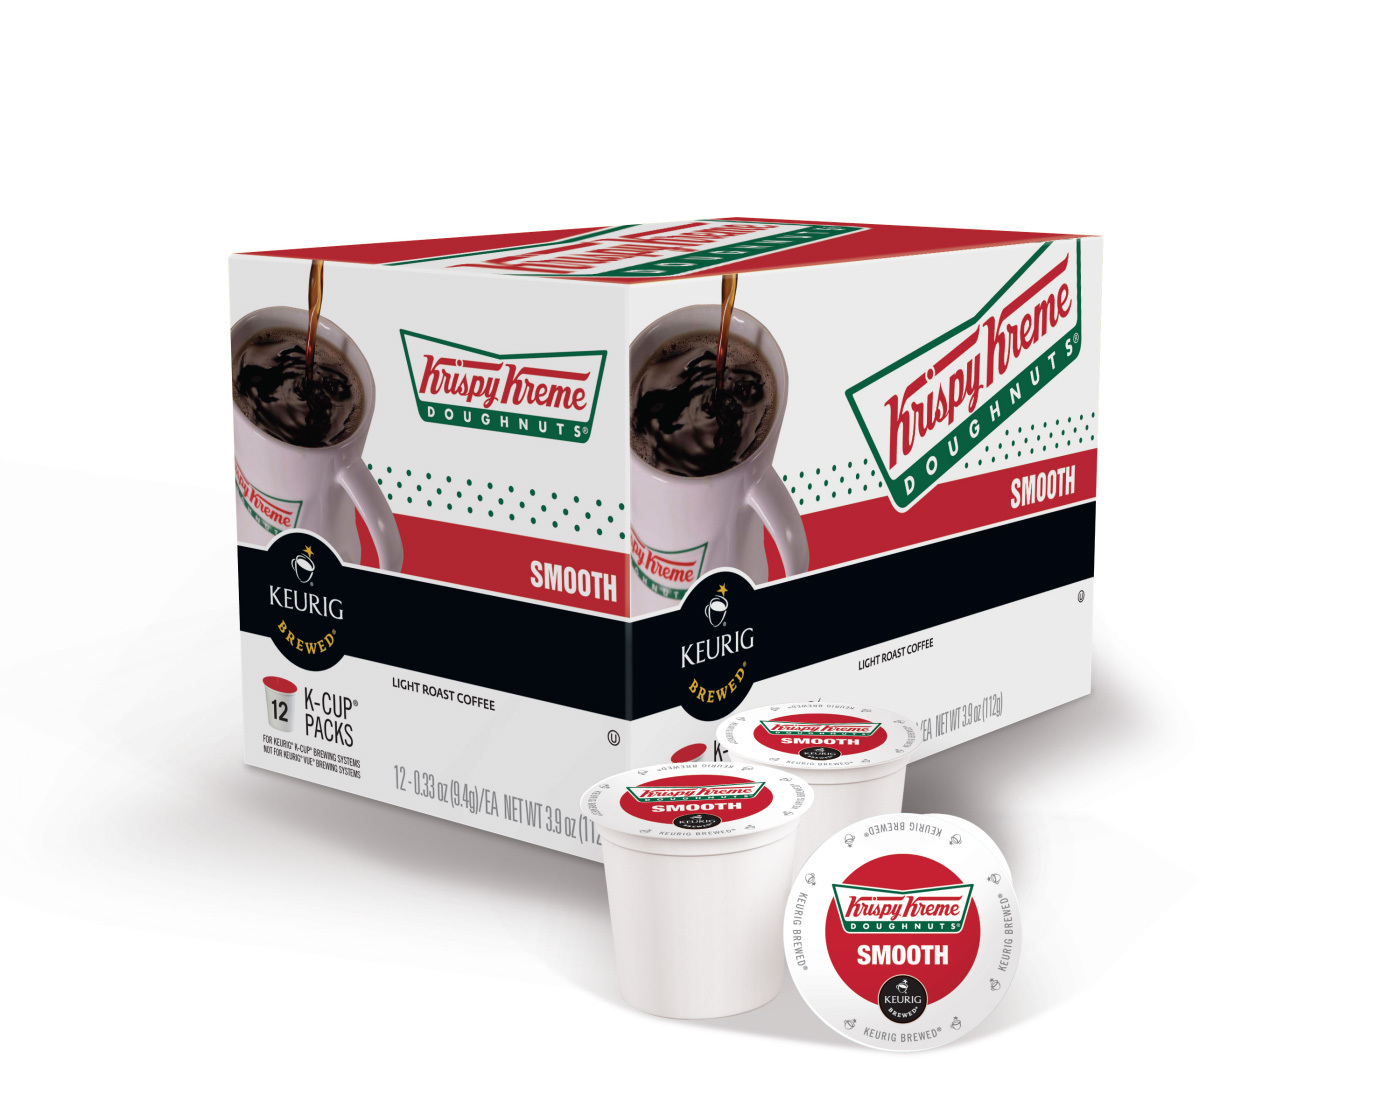 GMCR and Krispy Kreme plan to launch Krispy Kreme coffees, Smooth and Decaf, in K-Cup(R) packs for Keurig(R) brewers by the end of 2014. (Photo: Business Wire)